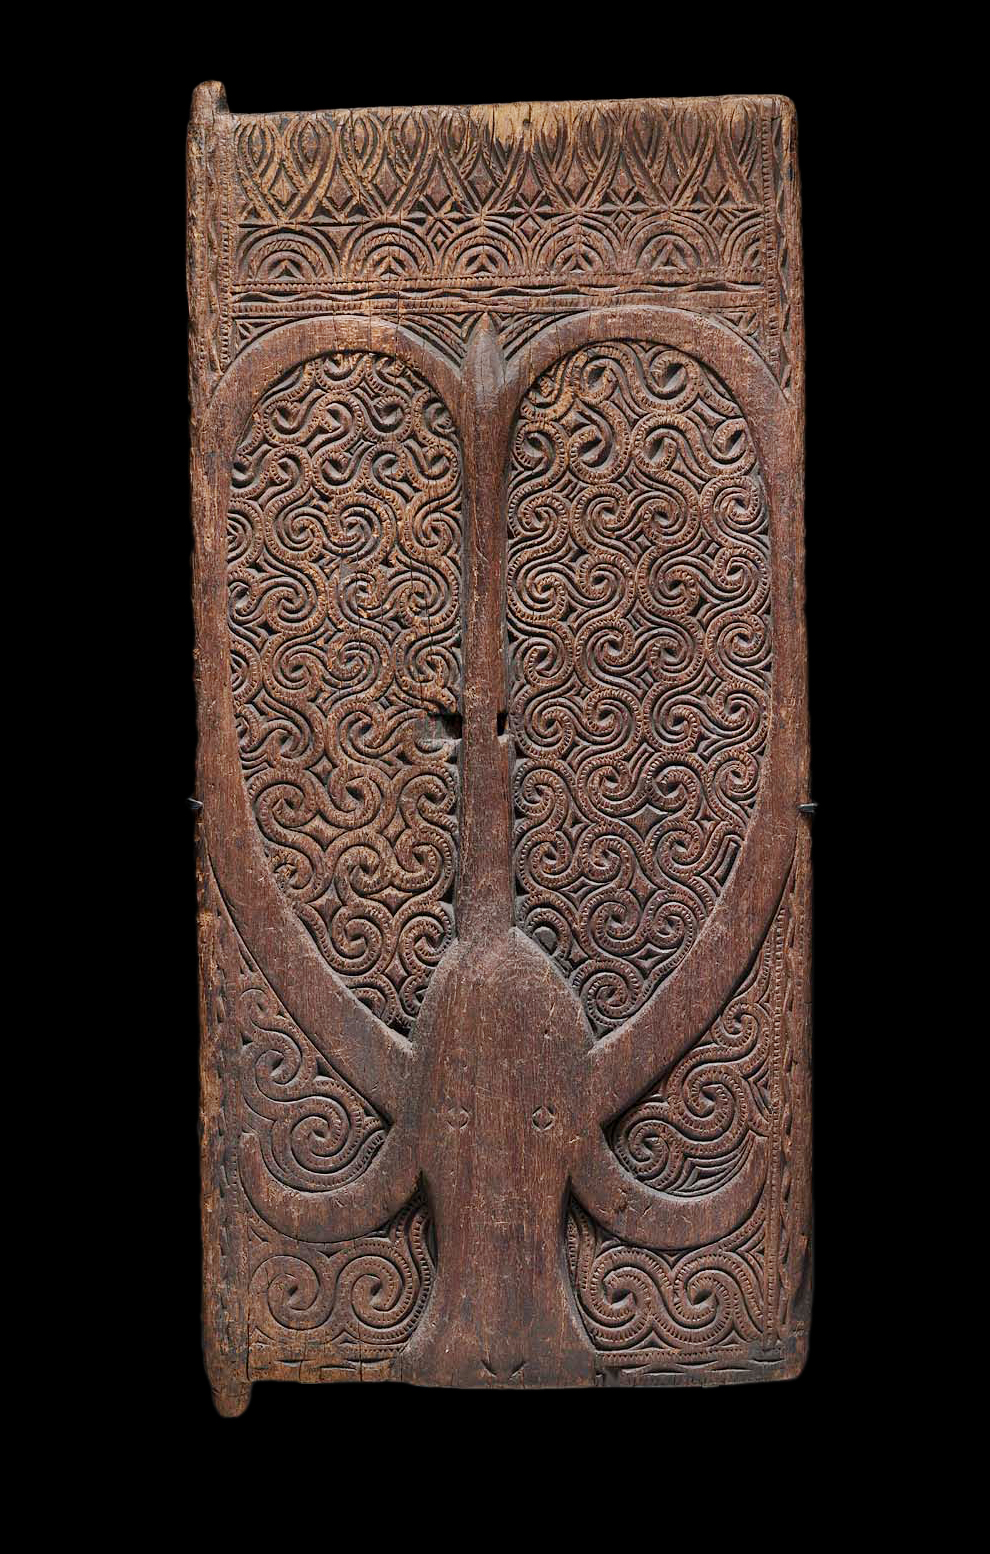 Toraja House Door with Buffalo Motif © Museum of Fine Arts, Boston | Massachusetts, USA